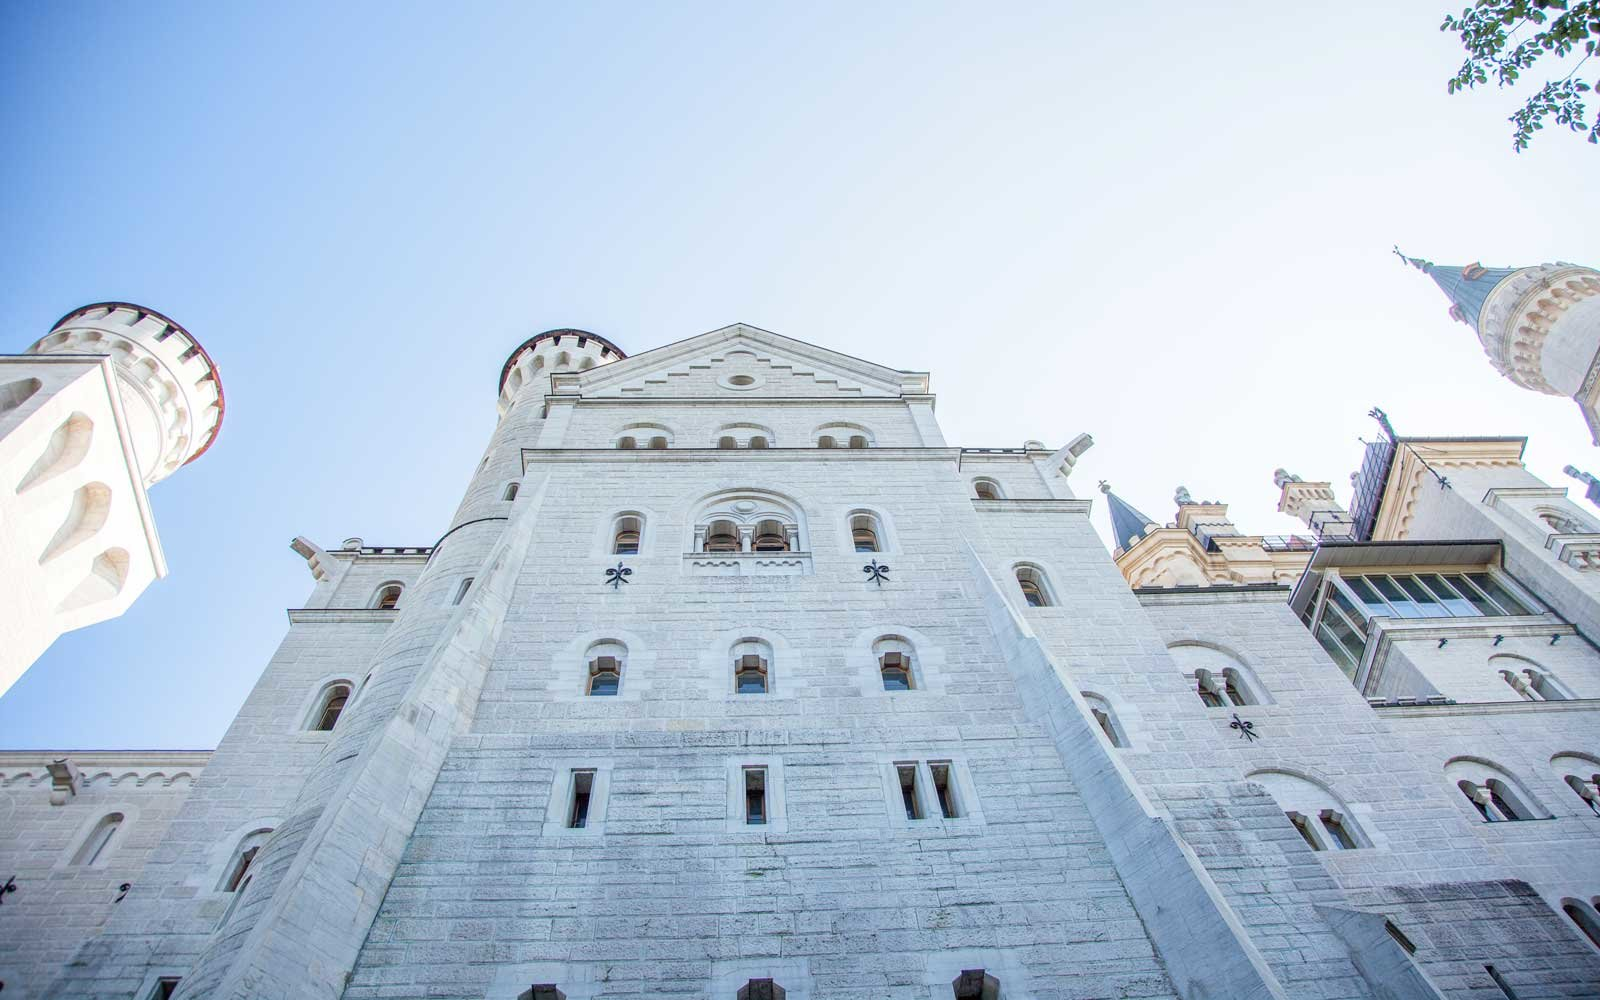 How Tall is Neuschwanstein Castle